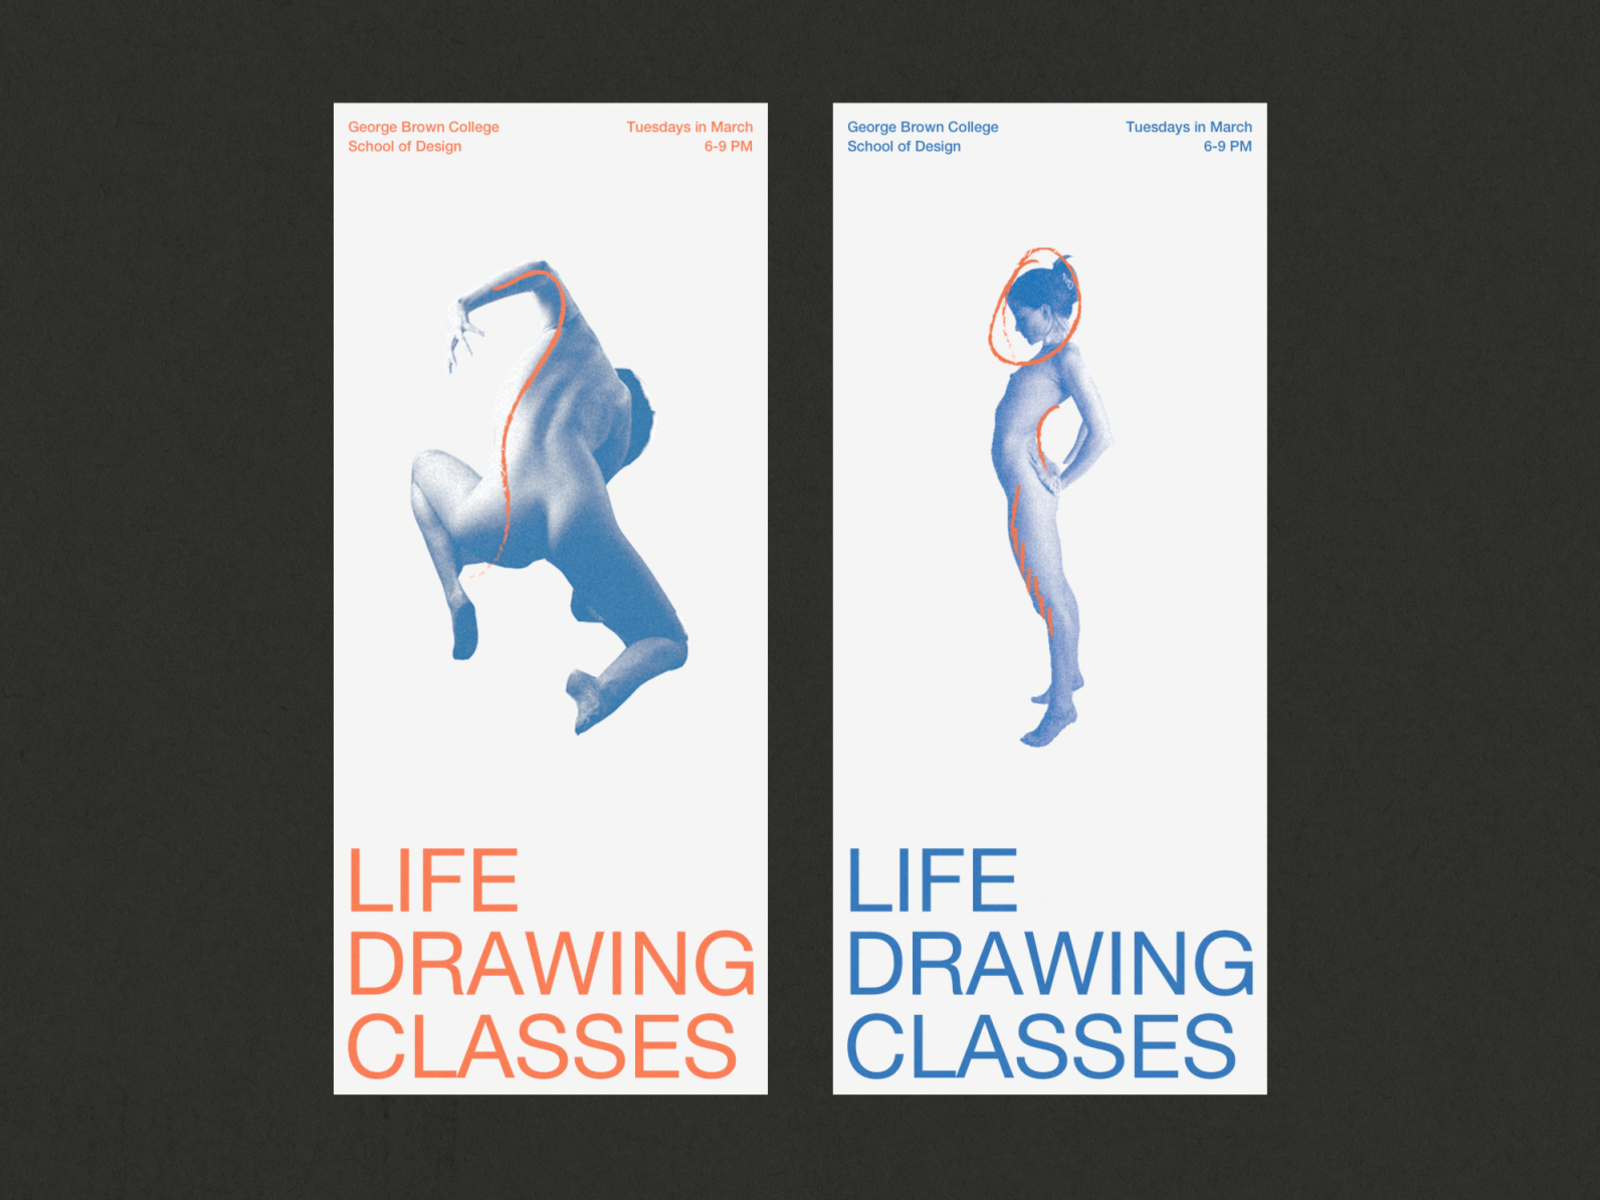 Life Drawing Poster Series by Polly D'Arcy on Dribbble